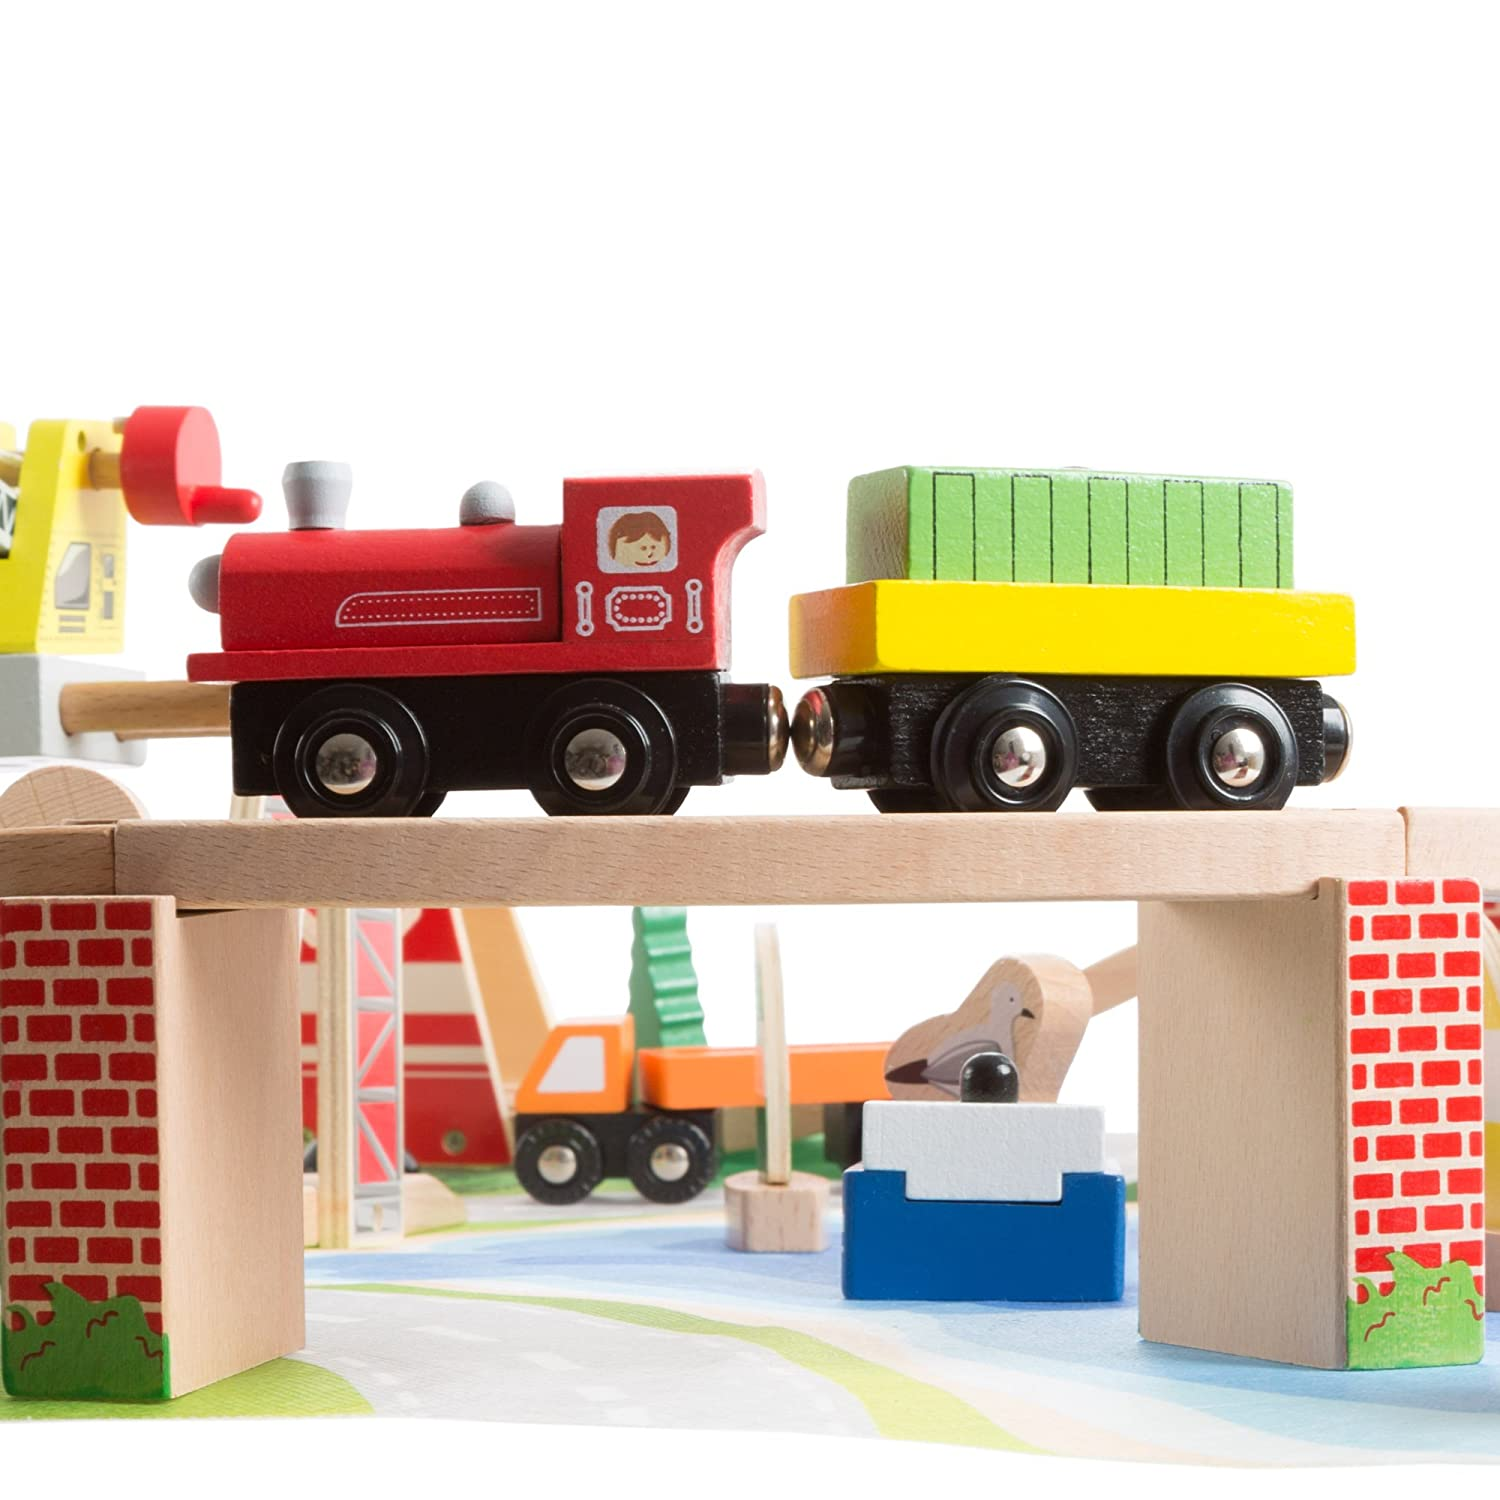 Boats Train Cars Hey Play Accessories for Boys and Girls Wooden Train Set with Play Mat for Kids-Includes Deluxe Wood Tracks